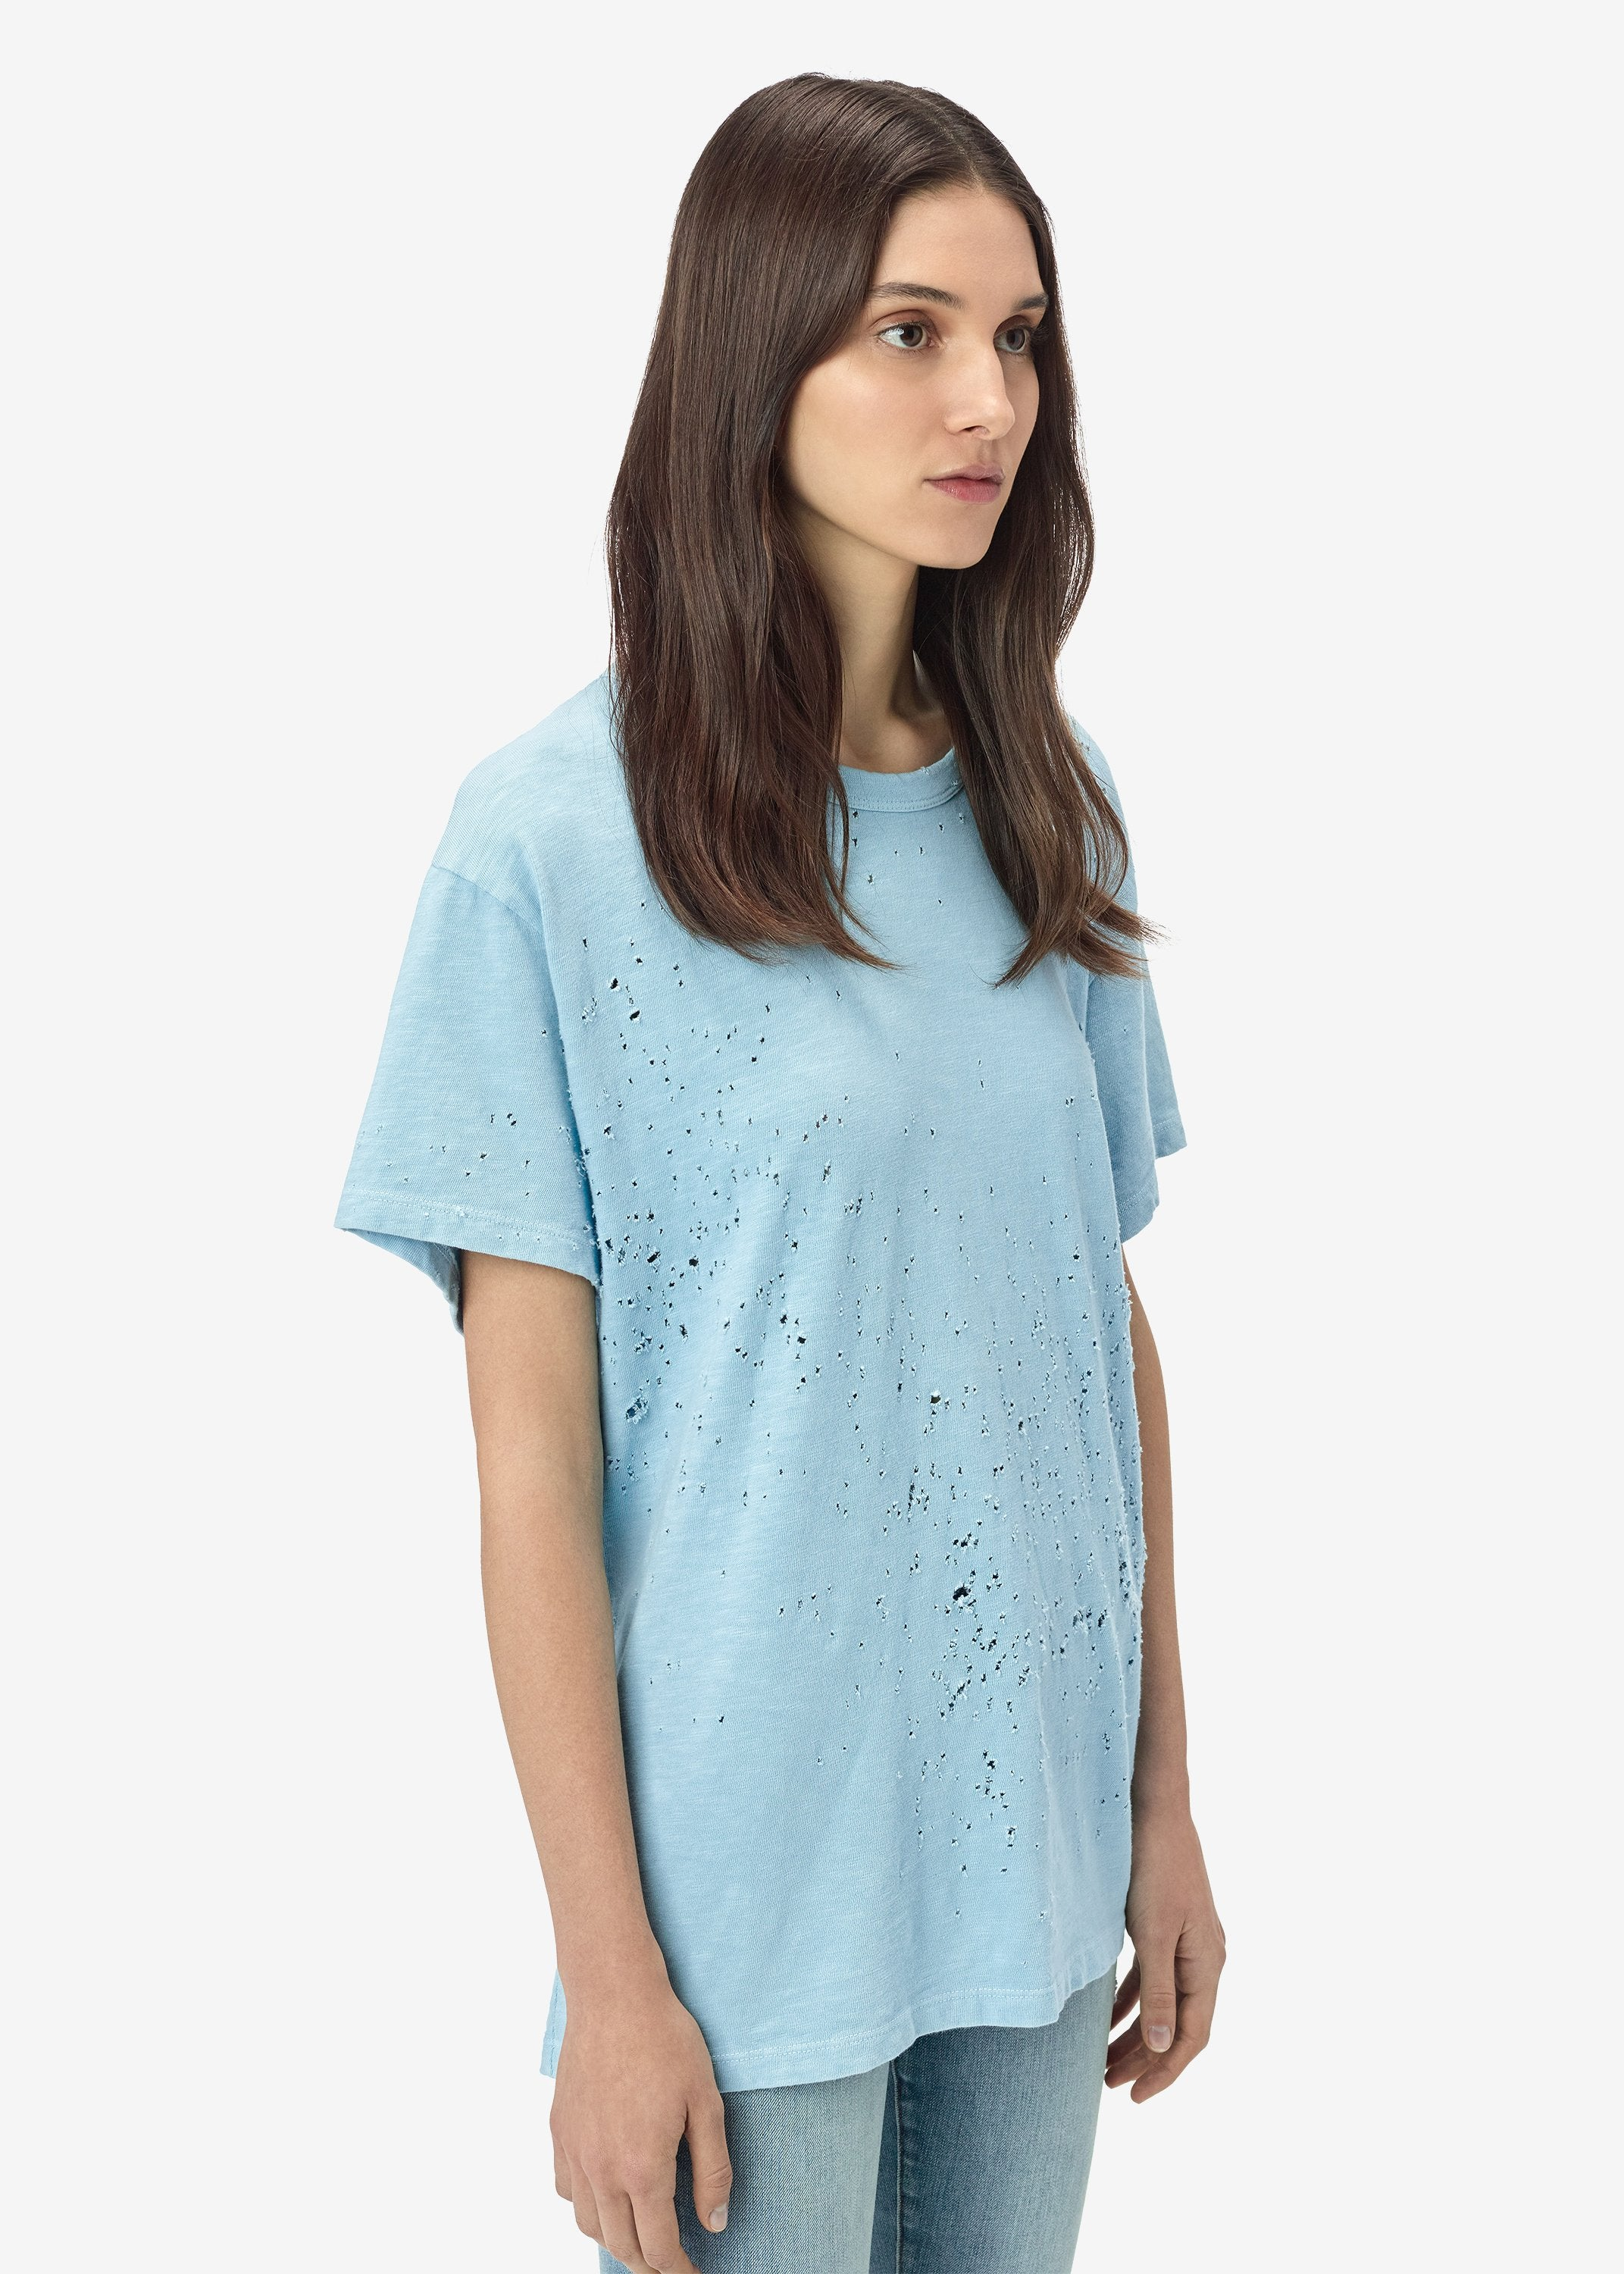 shotgun-tee-light-blue-image-2